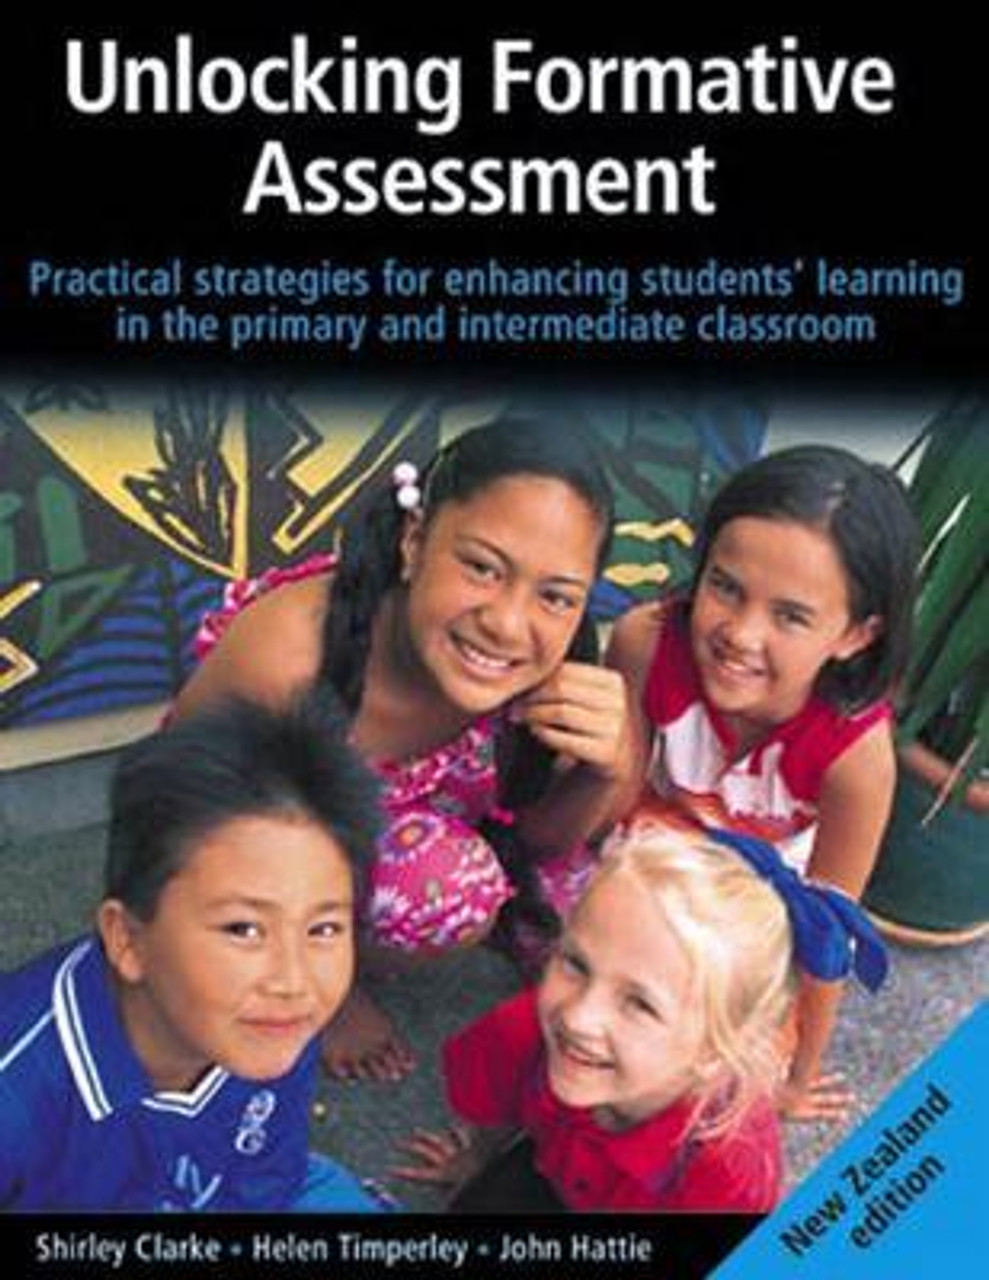 Unlocking Formative Assessment - New Zealand Edition